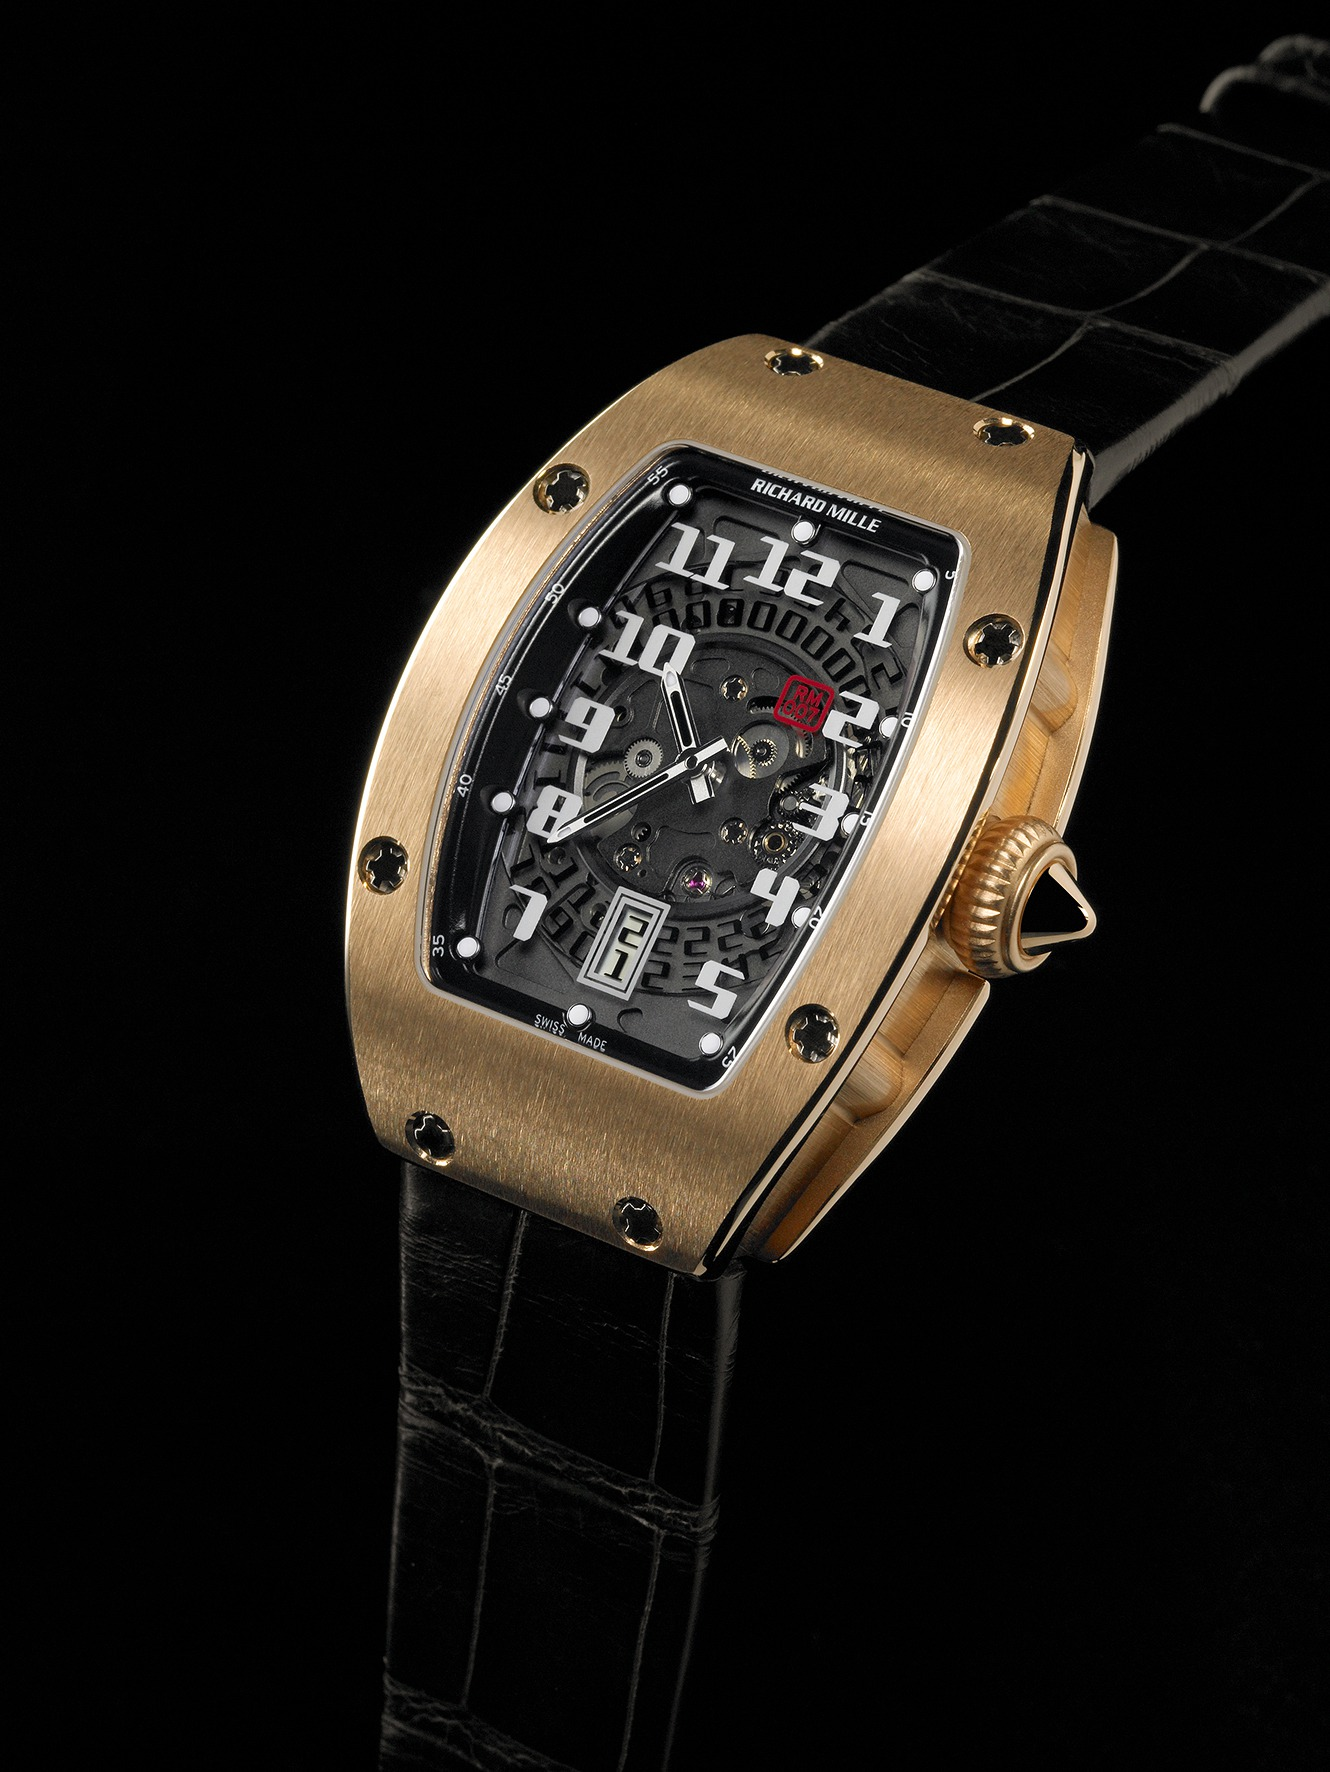 Replica Richard Mille RM 007 Red Gold Watch